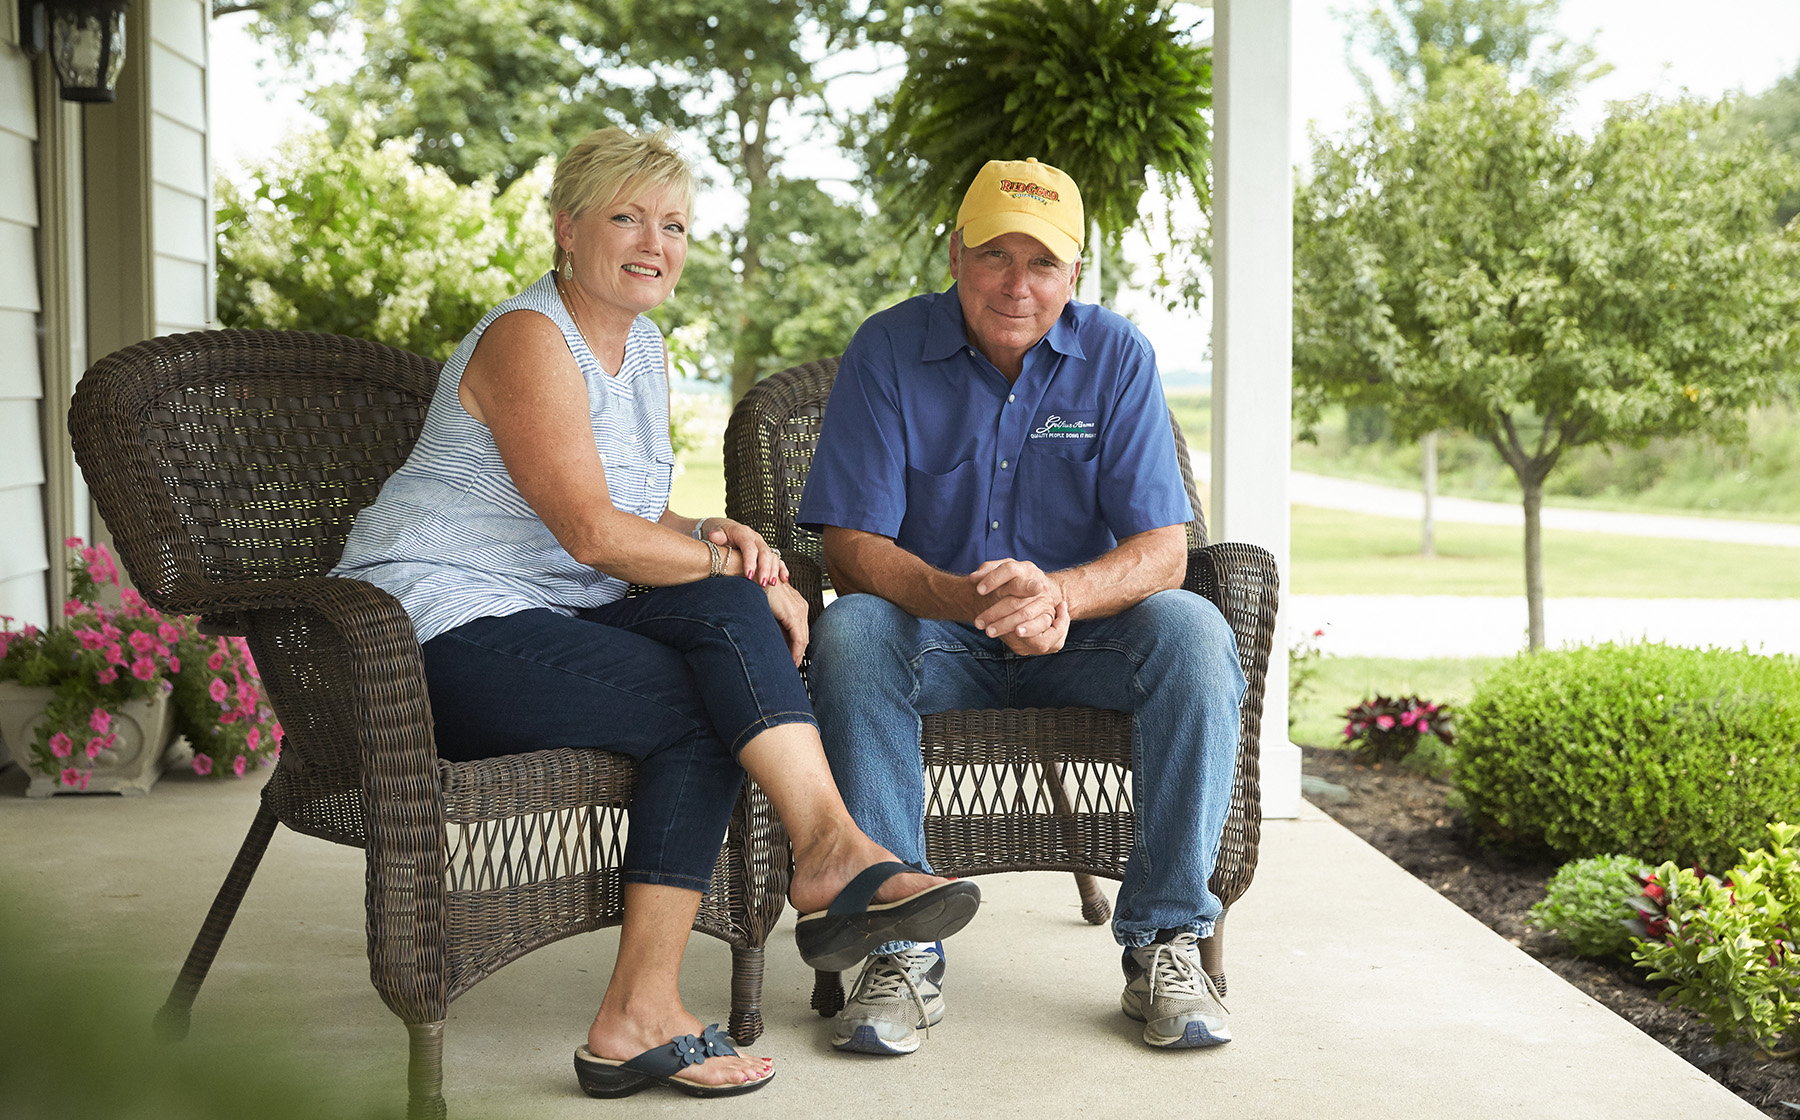 Image of Gelfius Family Farms Growers for Red Gold Tomatoes from Hartsville Indiana Bill and Norma Gelfius sitting in wicker chairs on front porch